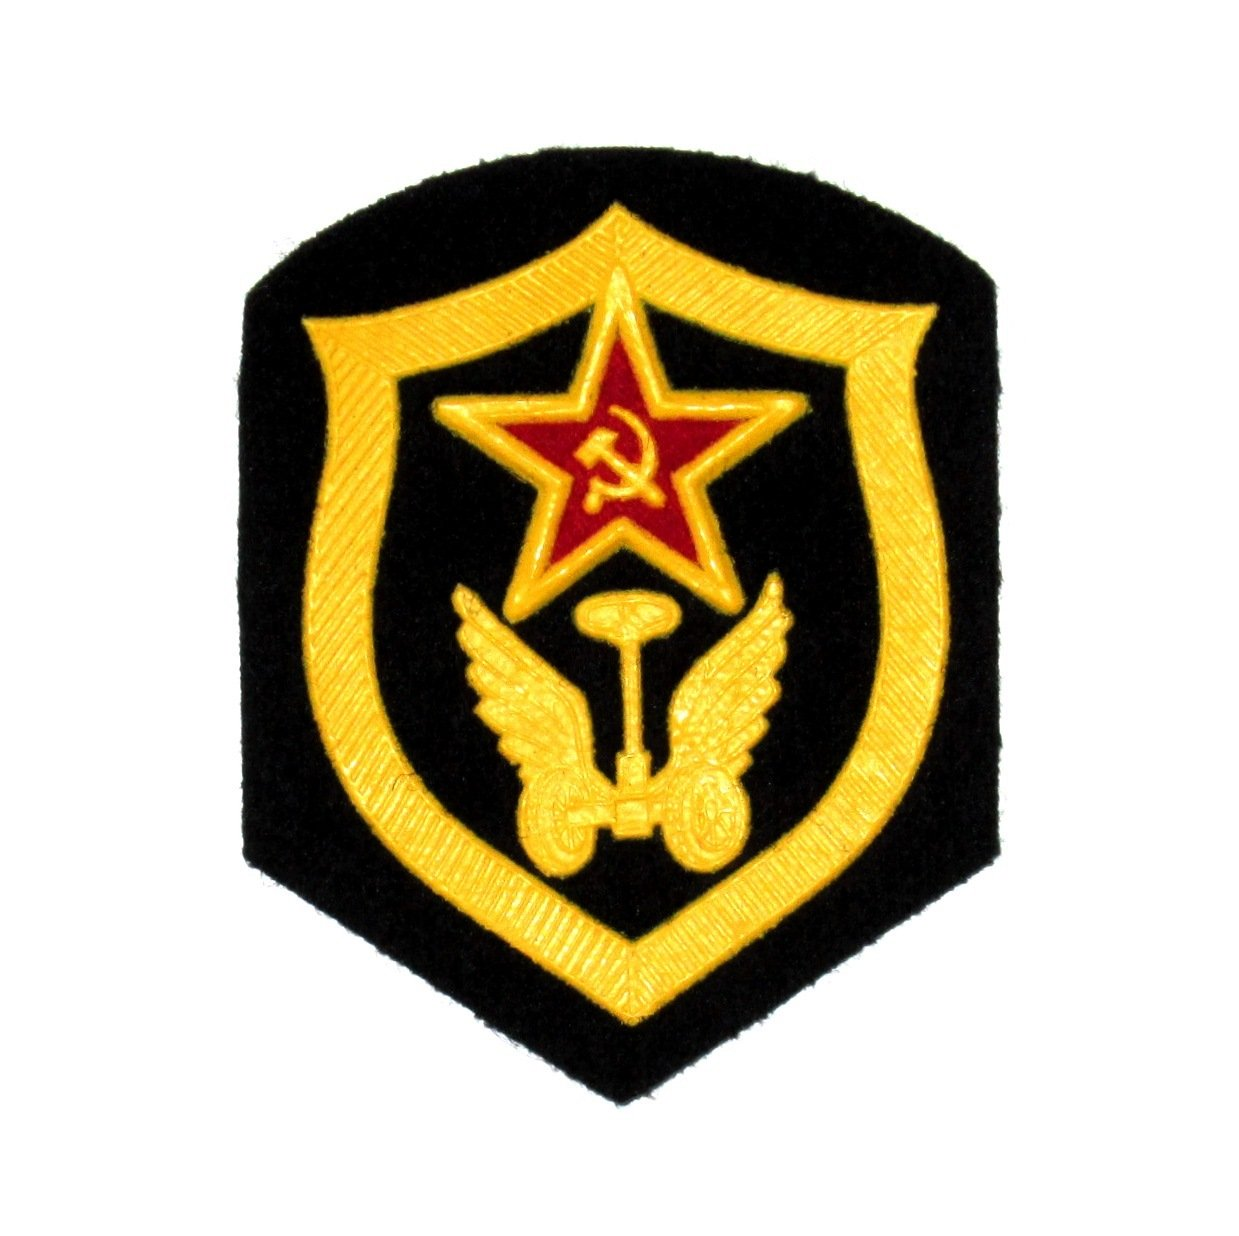 100% Original Patch Army Soviet Union Communist Russia - USSR - Car Troops